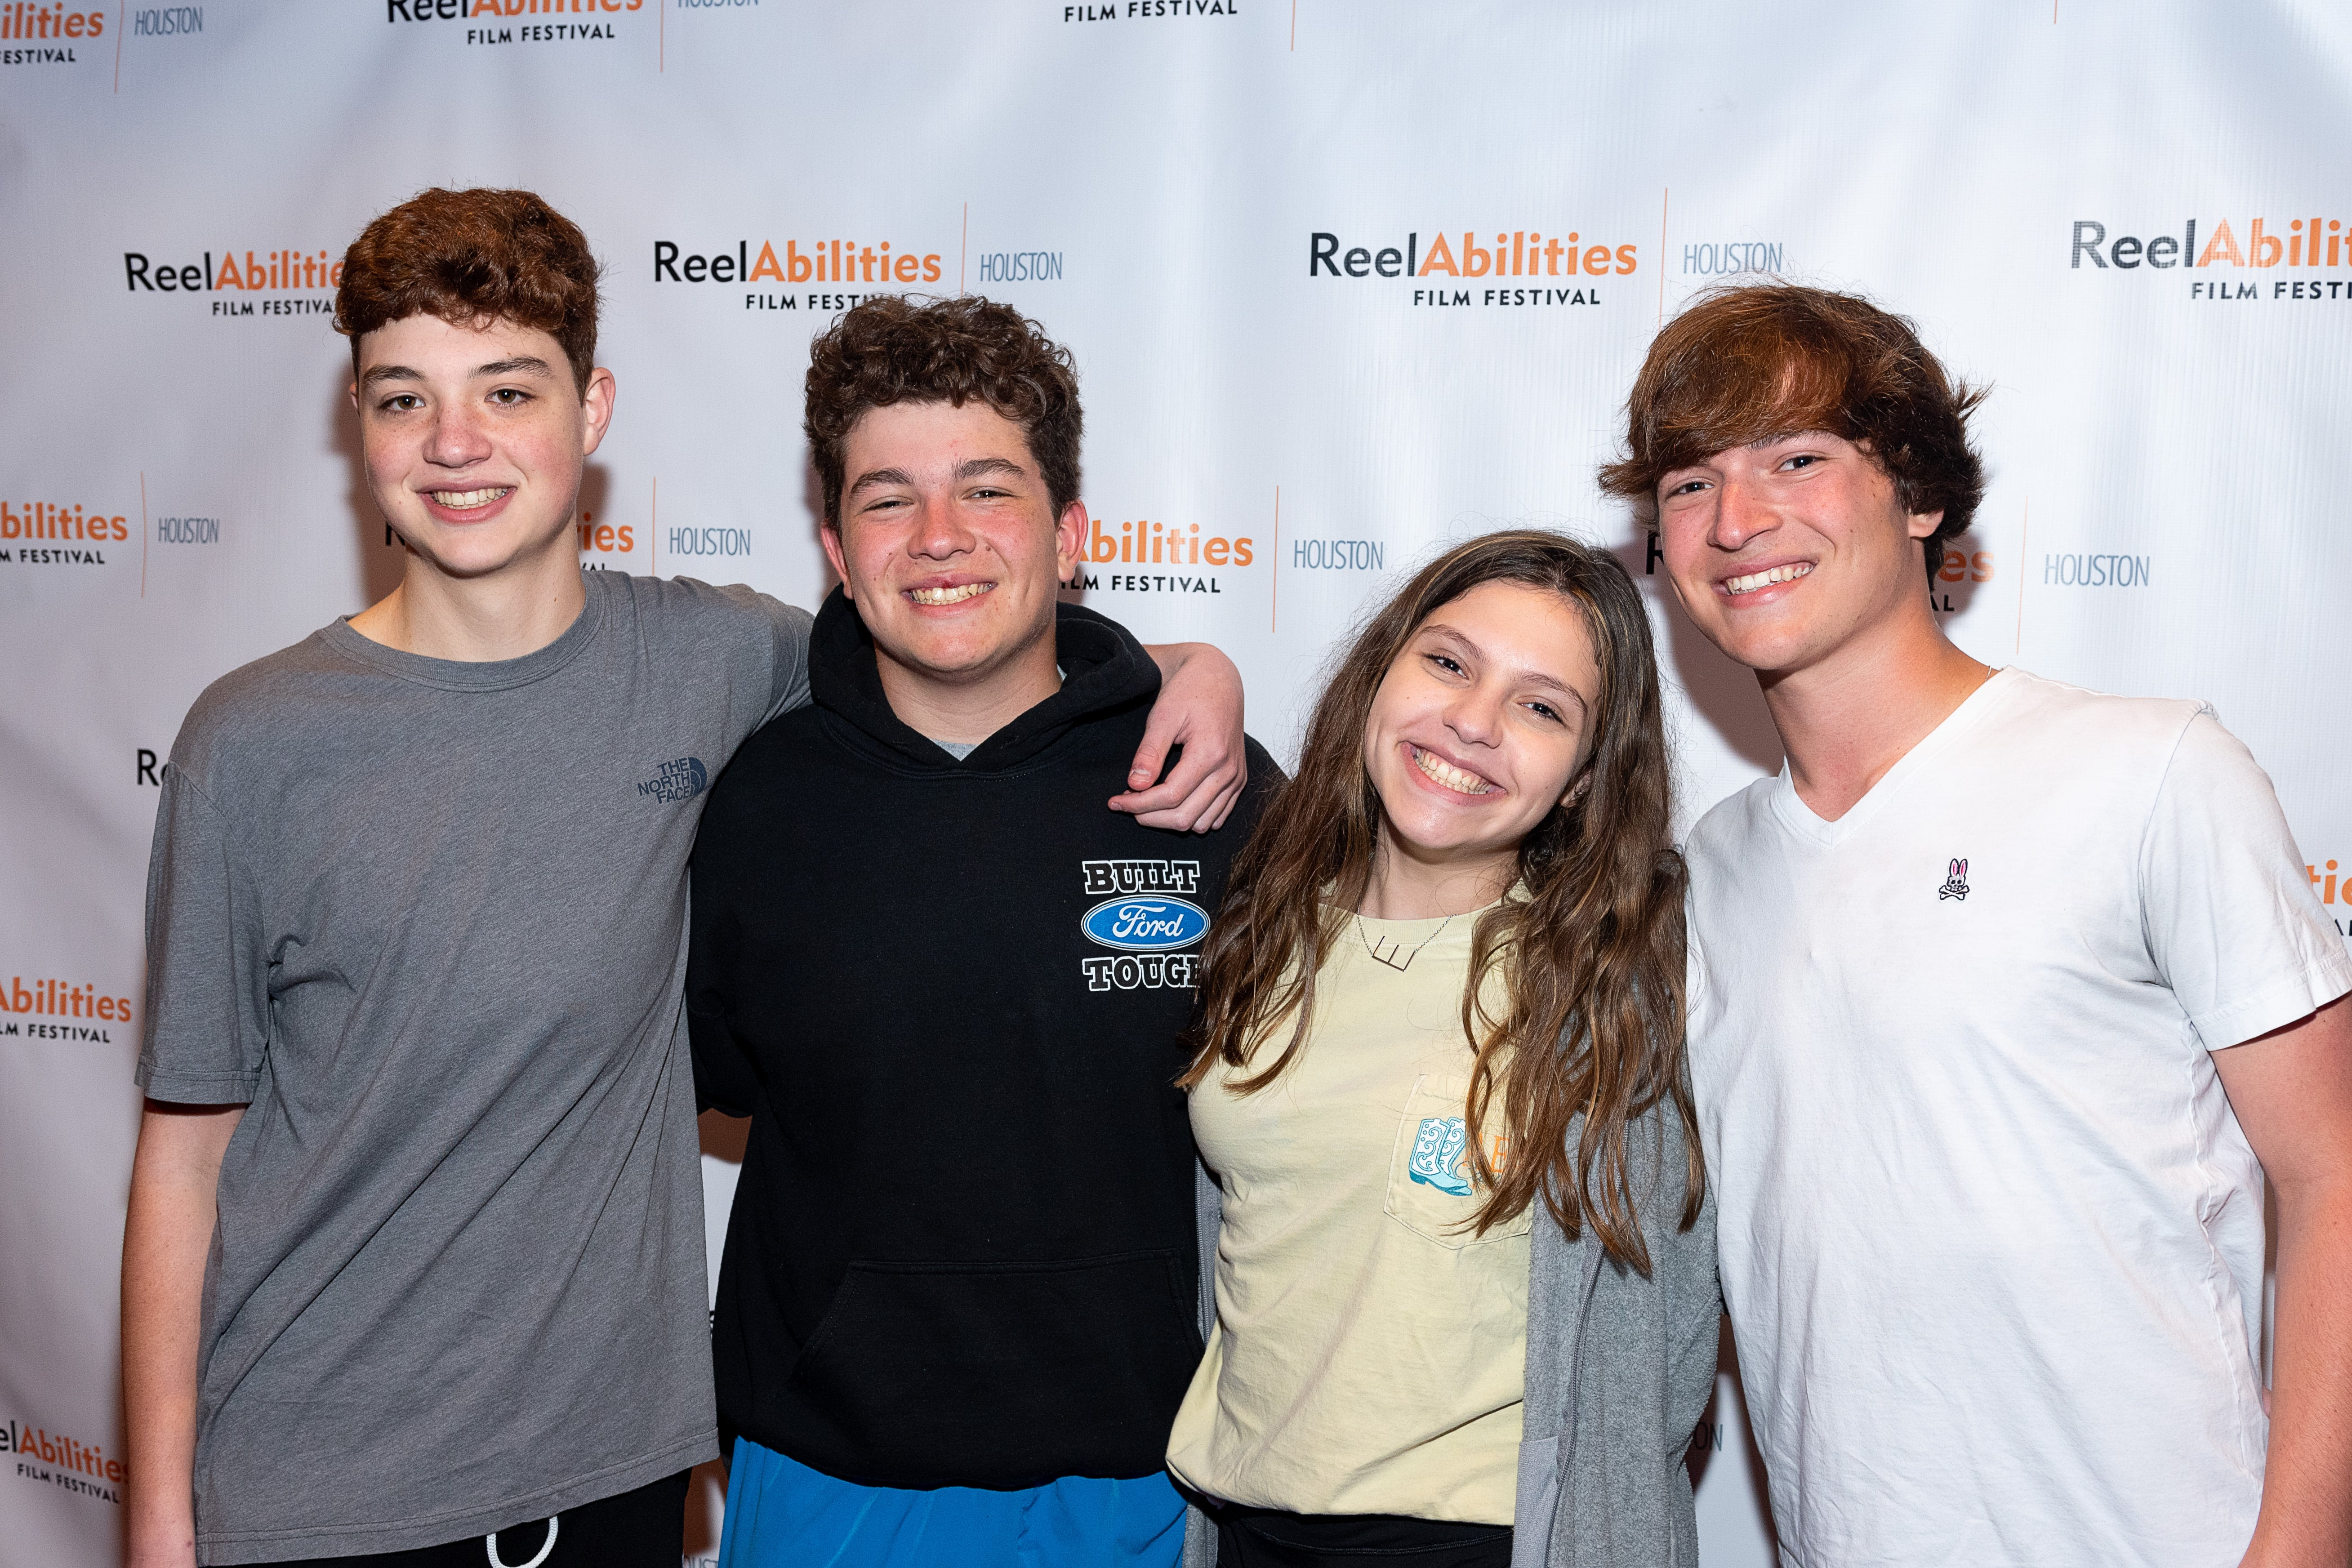 Group of teens at preview event